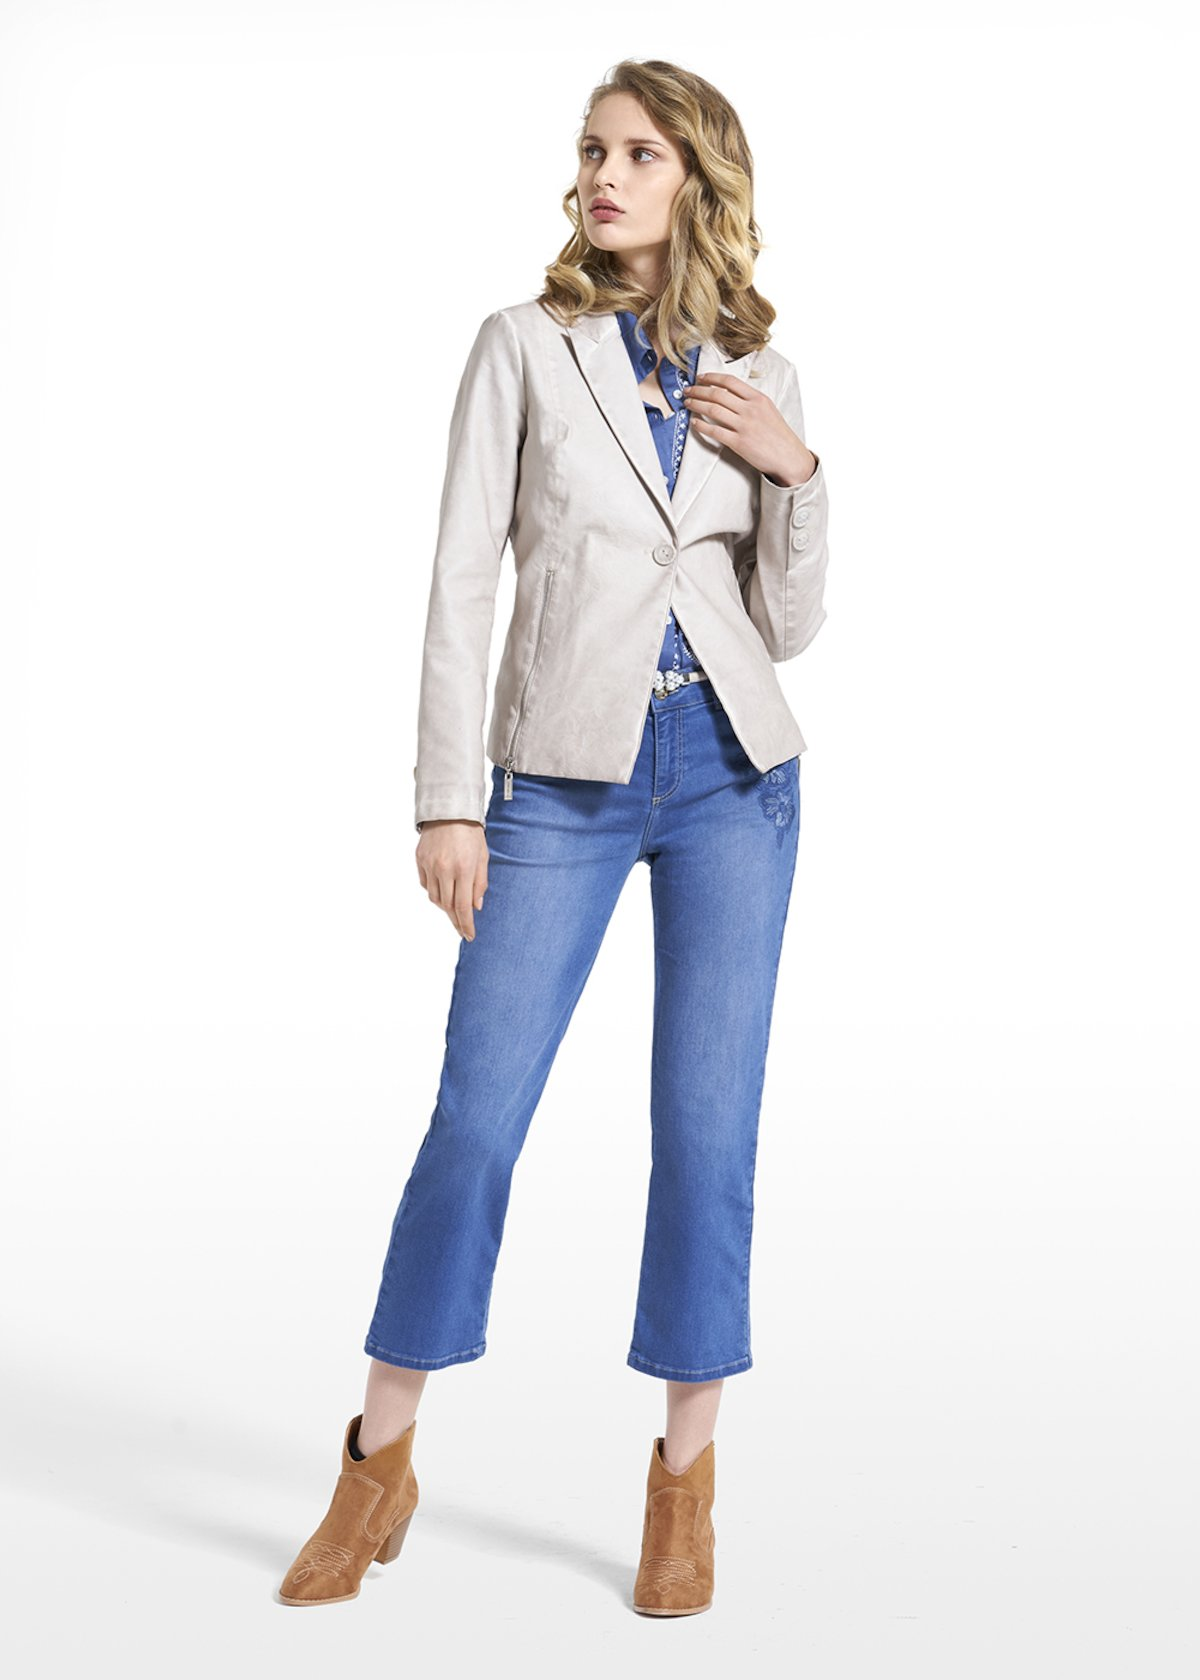 Faux leather jacket Guliver with stripes style inner lining - Light Beige - Woman - Category image